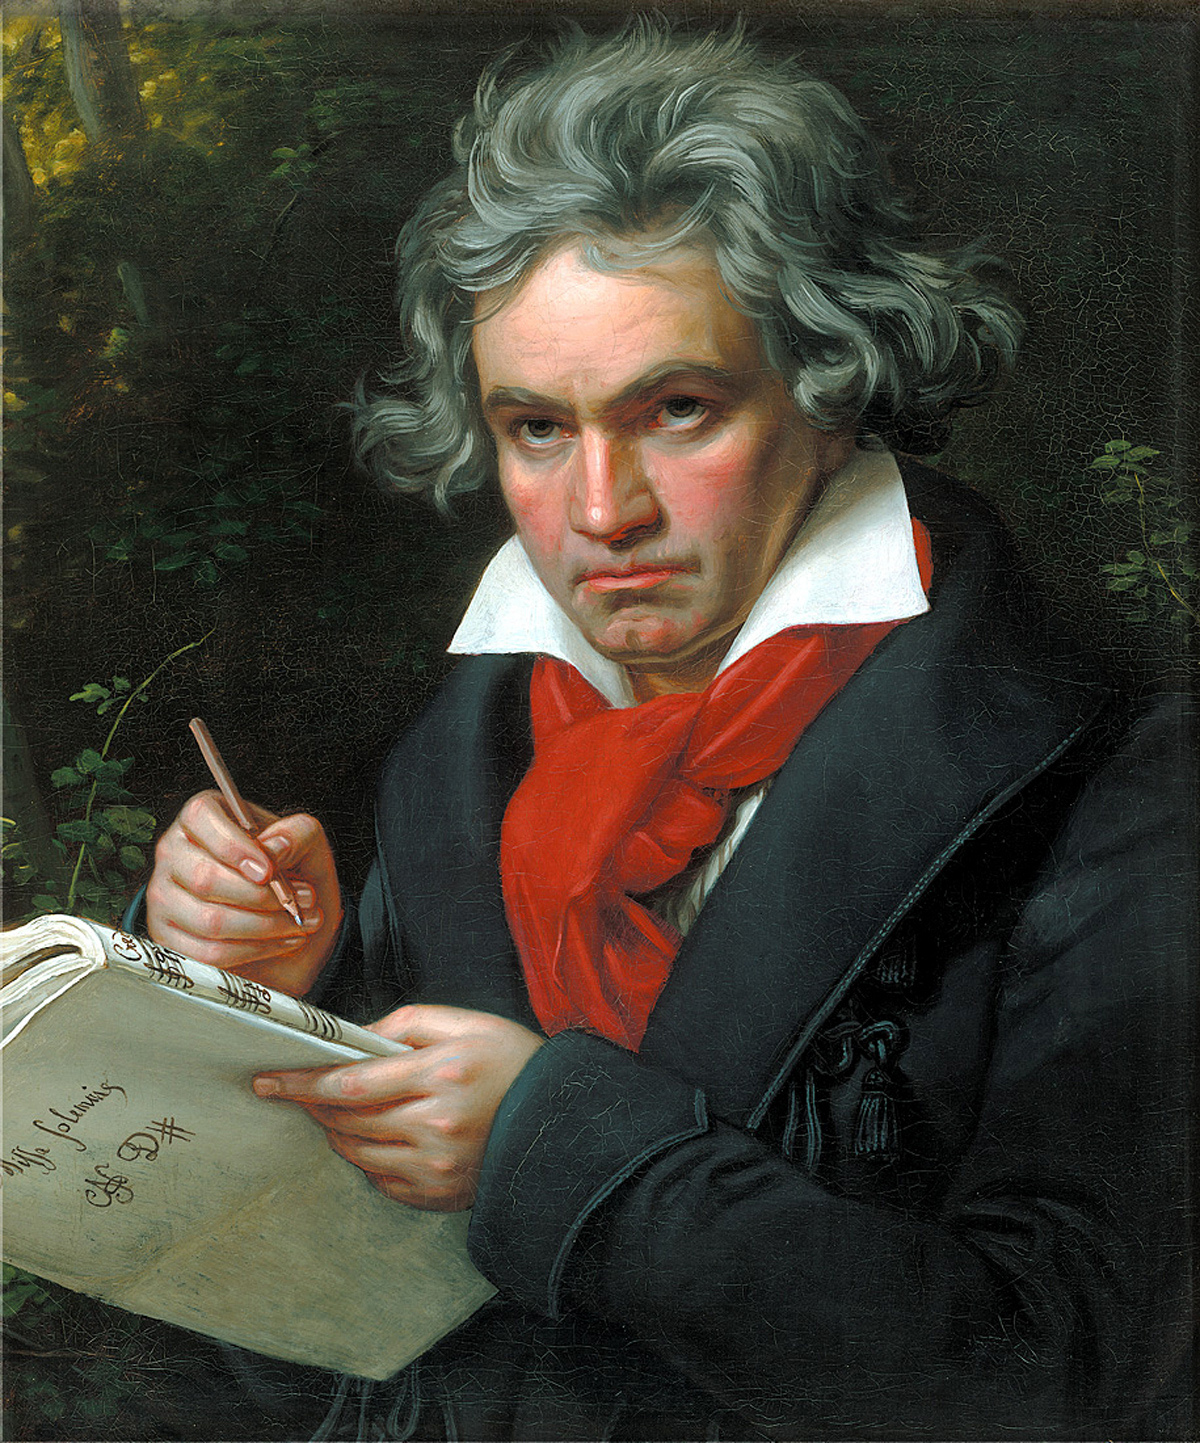 Beethoven, classical, composer, music, German, portrait, Stieler